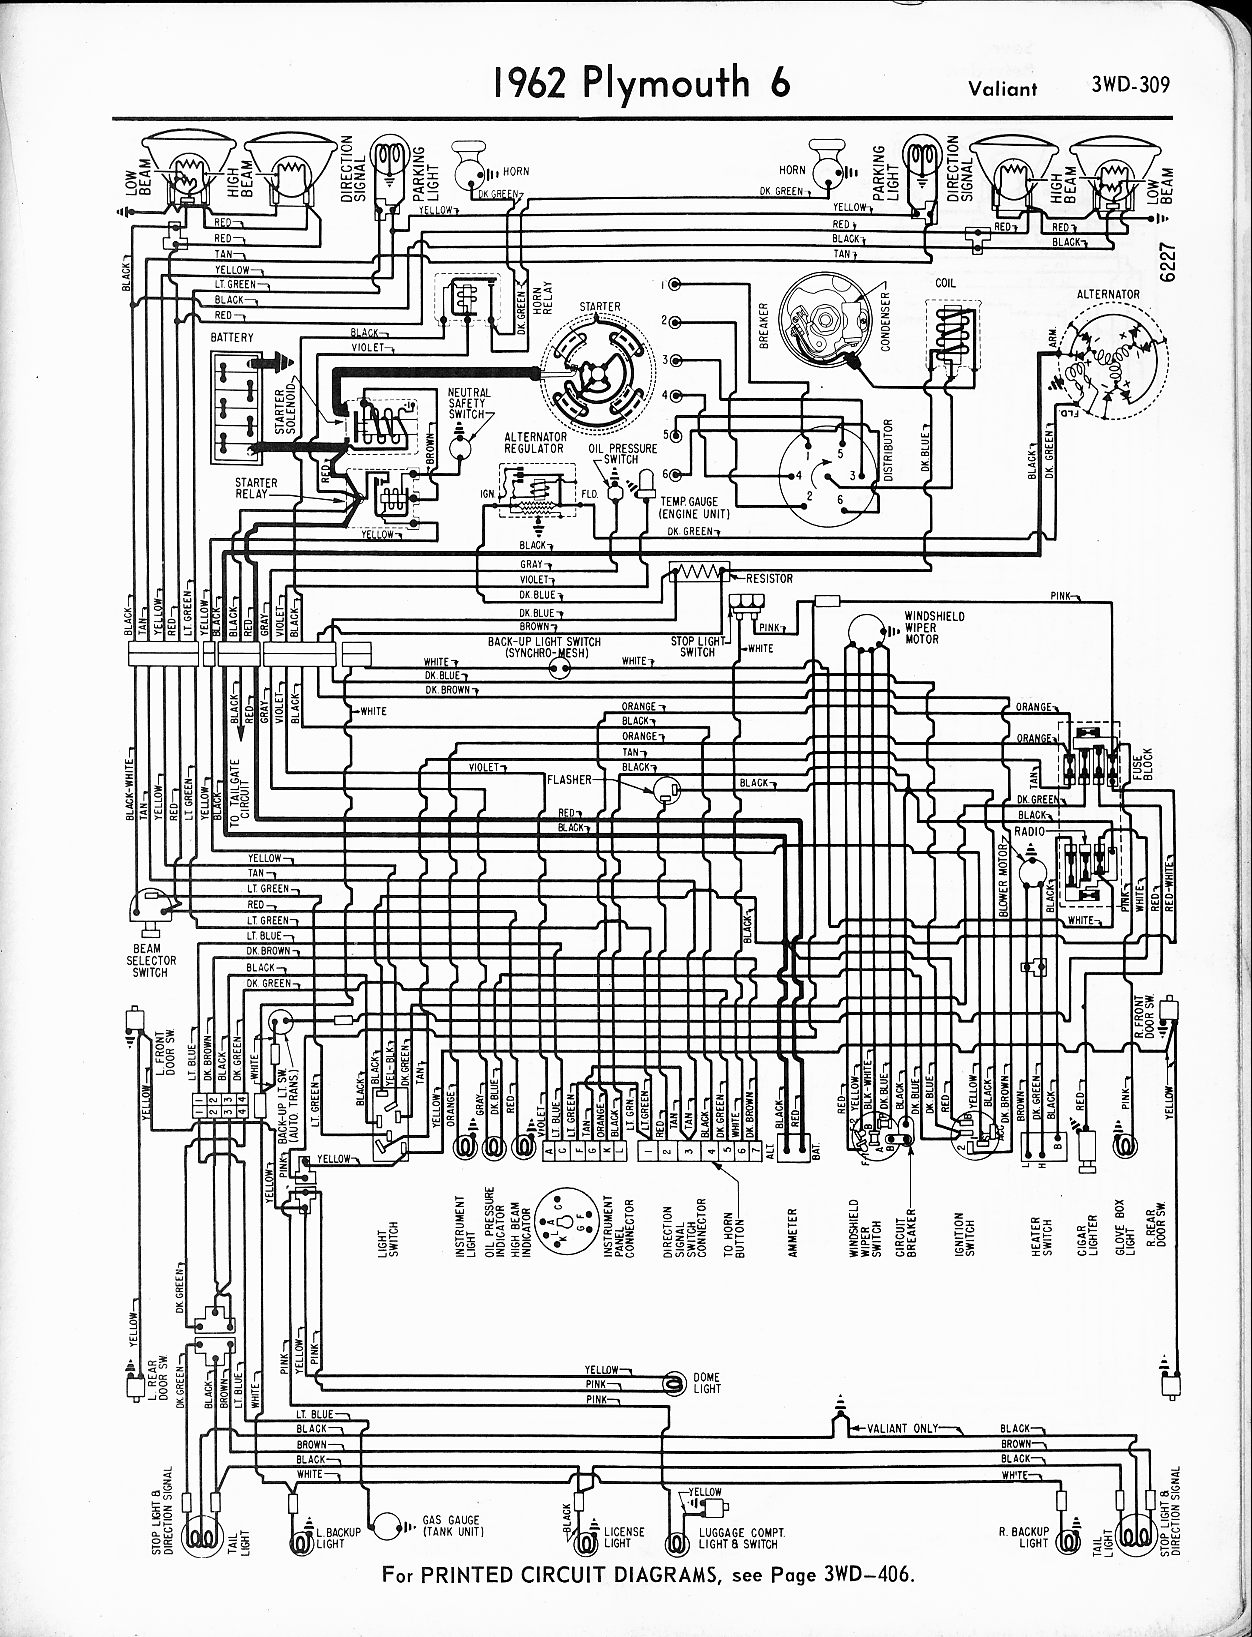 1970 Cuda Dash Wiring Diagram Great Design Of 73 Mustang 71 Get Free Image About 1969 Plymouth